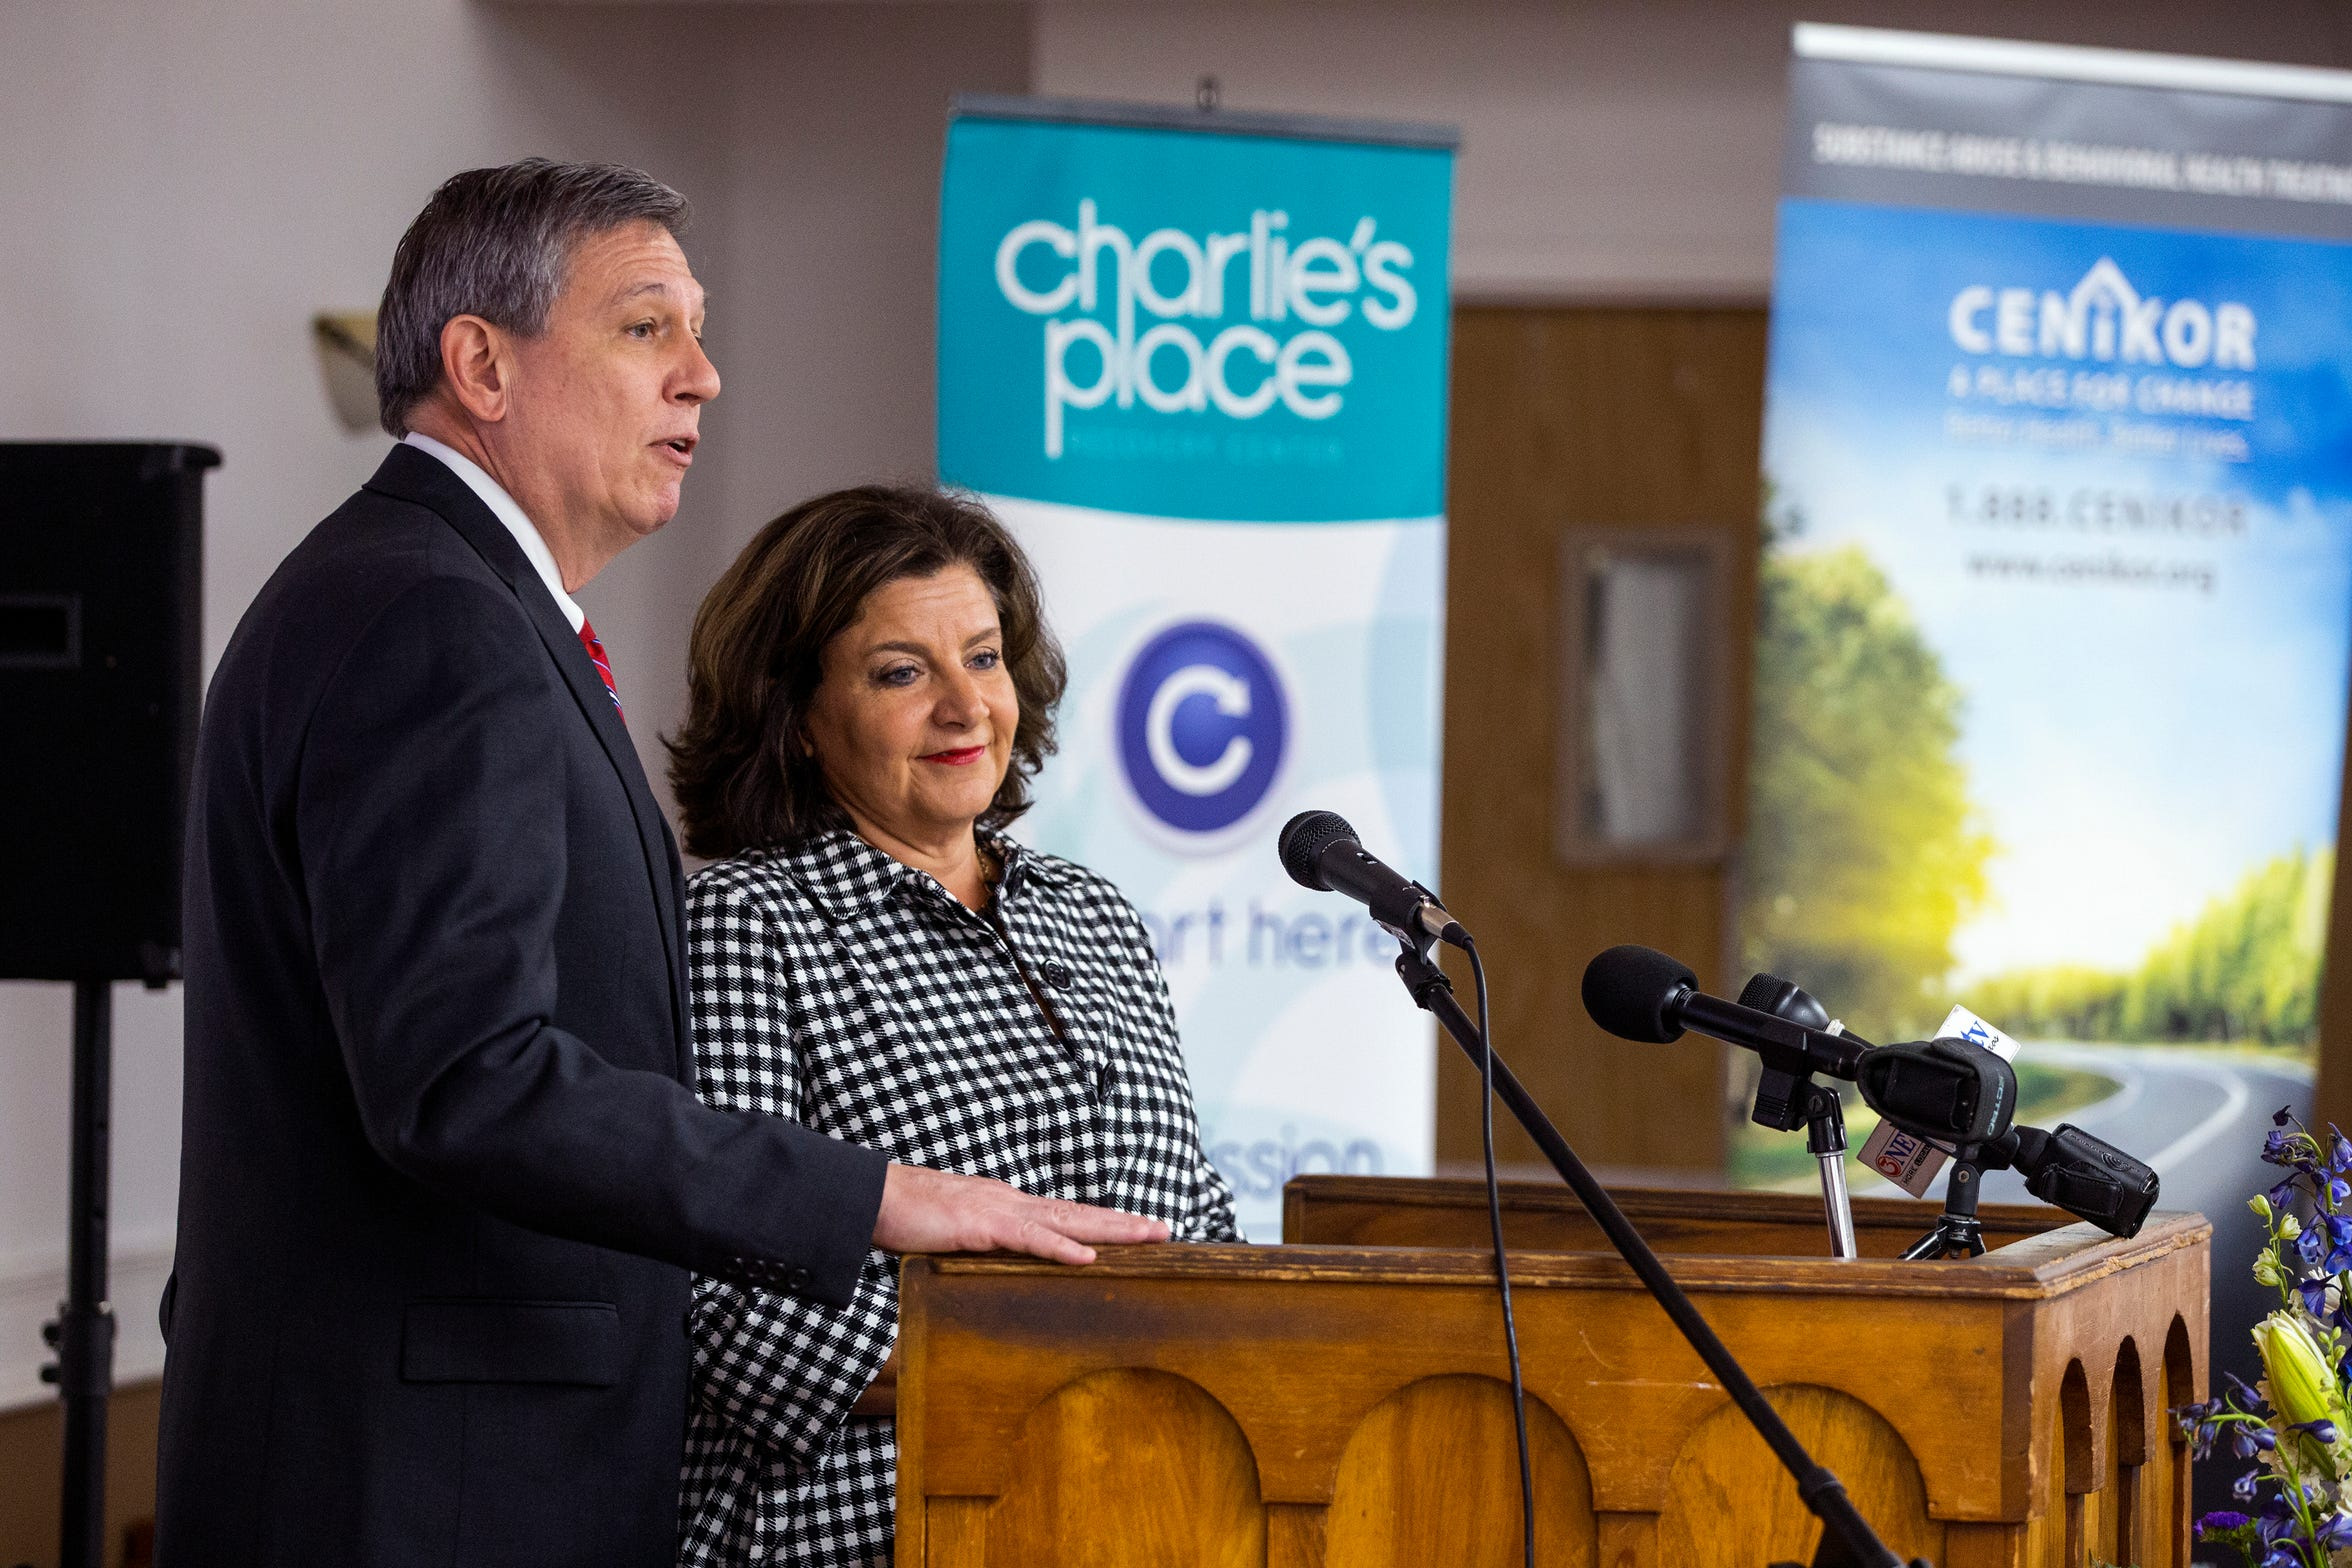 Bill Bailey, President and CEO of Cenikor Foundation and Amy Granberry, CEO of Charlie's Place Recovery Center, speak about the joining of Charlie's Place with Cenikor Foundation, a non-profit, substance use and behavioral health treatment program based in Houston during a celebration announcement on Tuesday, August 28, 2018. Cenikor Foundation offers services such as a two-year, therapeutic community treatment program and prevention programs for students as well as a pregnant and postpartum intervention program.